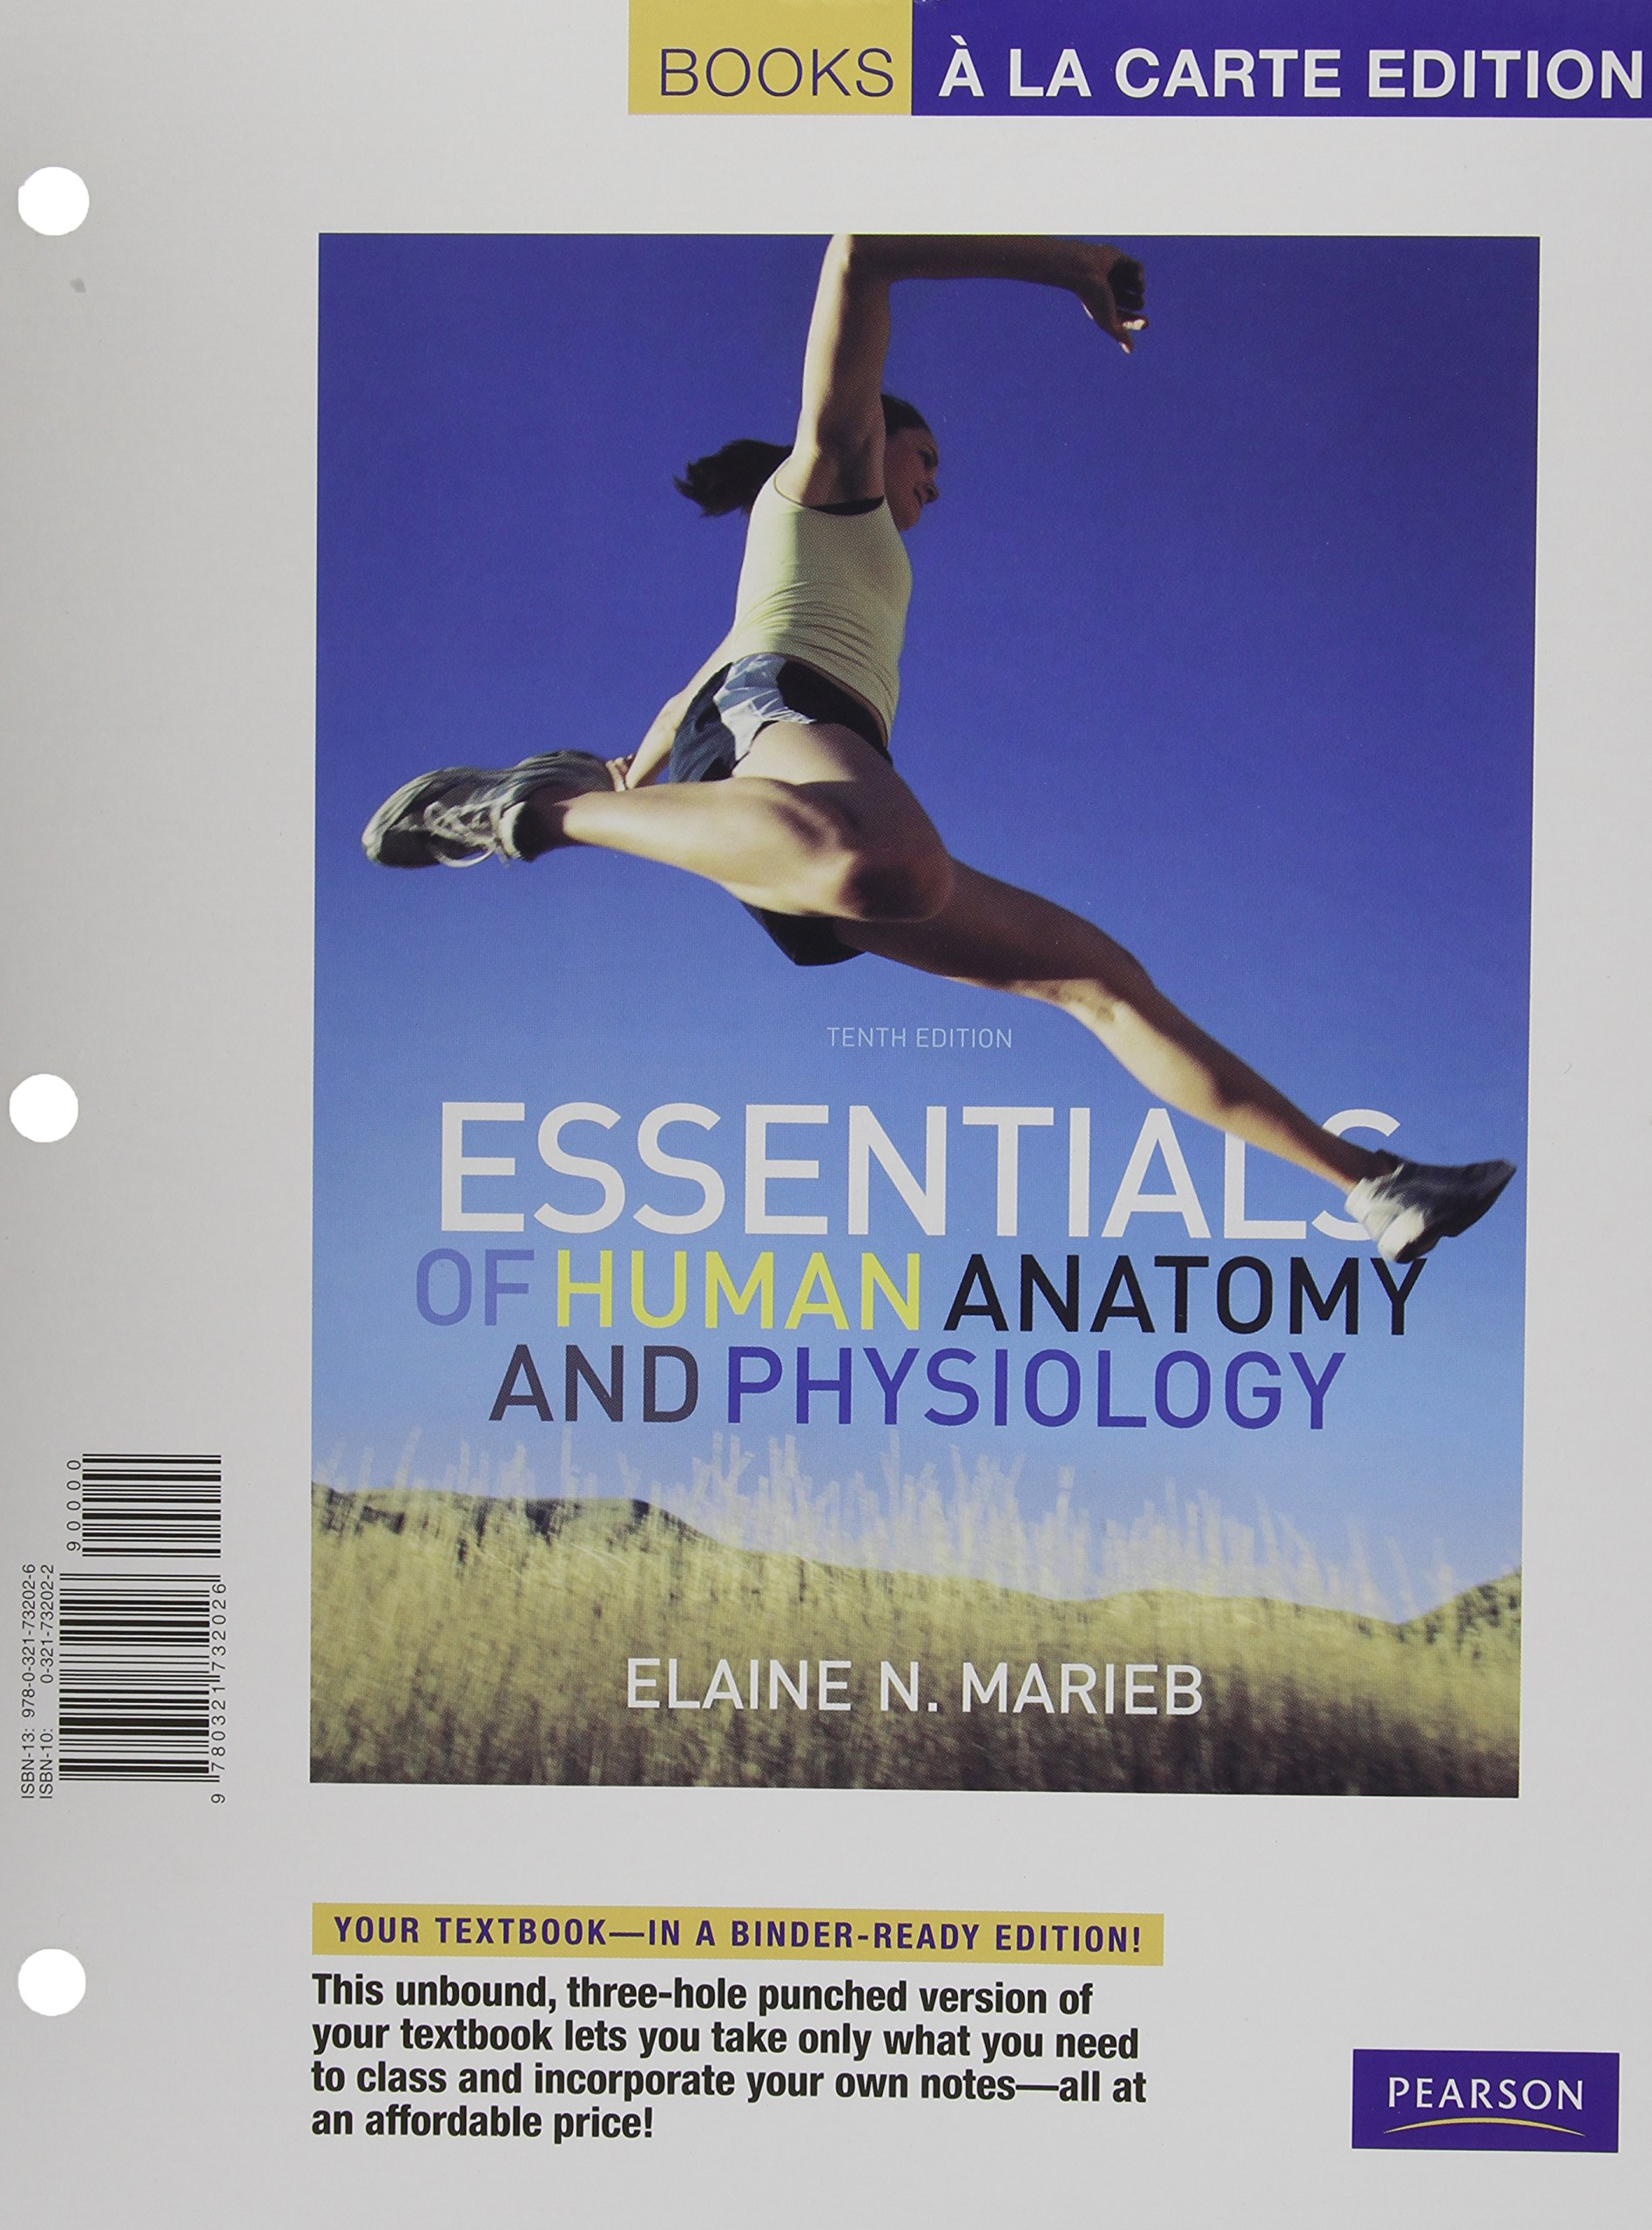 Essentials Of Human Anatomy And Physiology Books A La Carte Edition